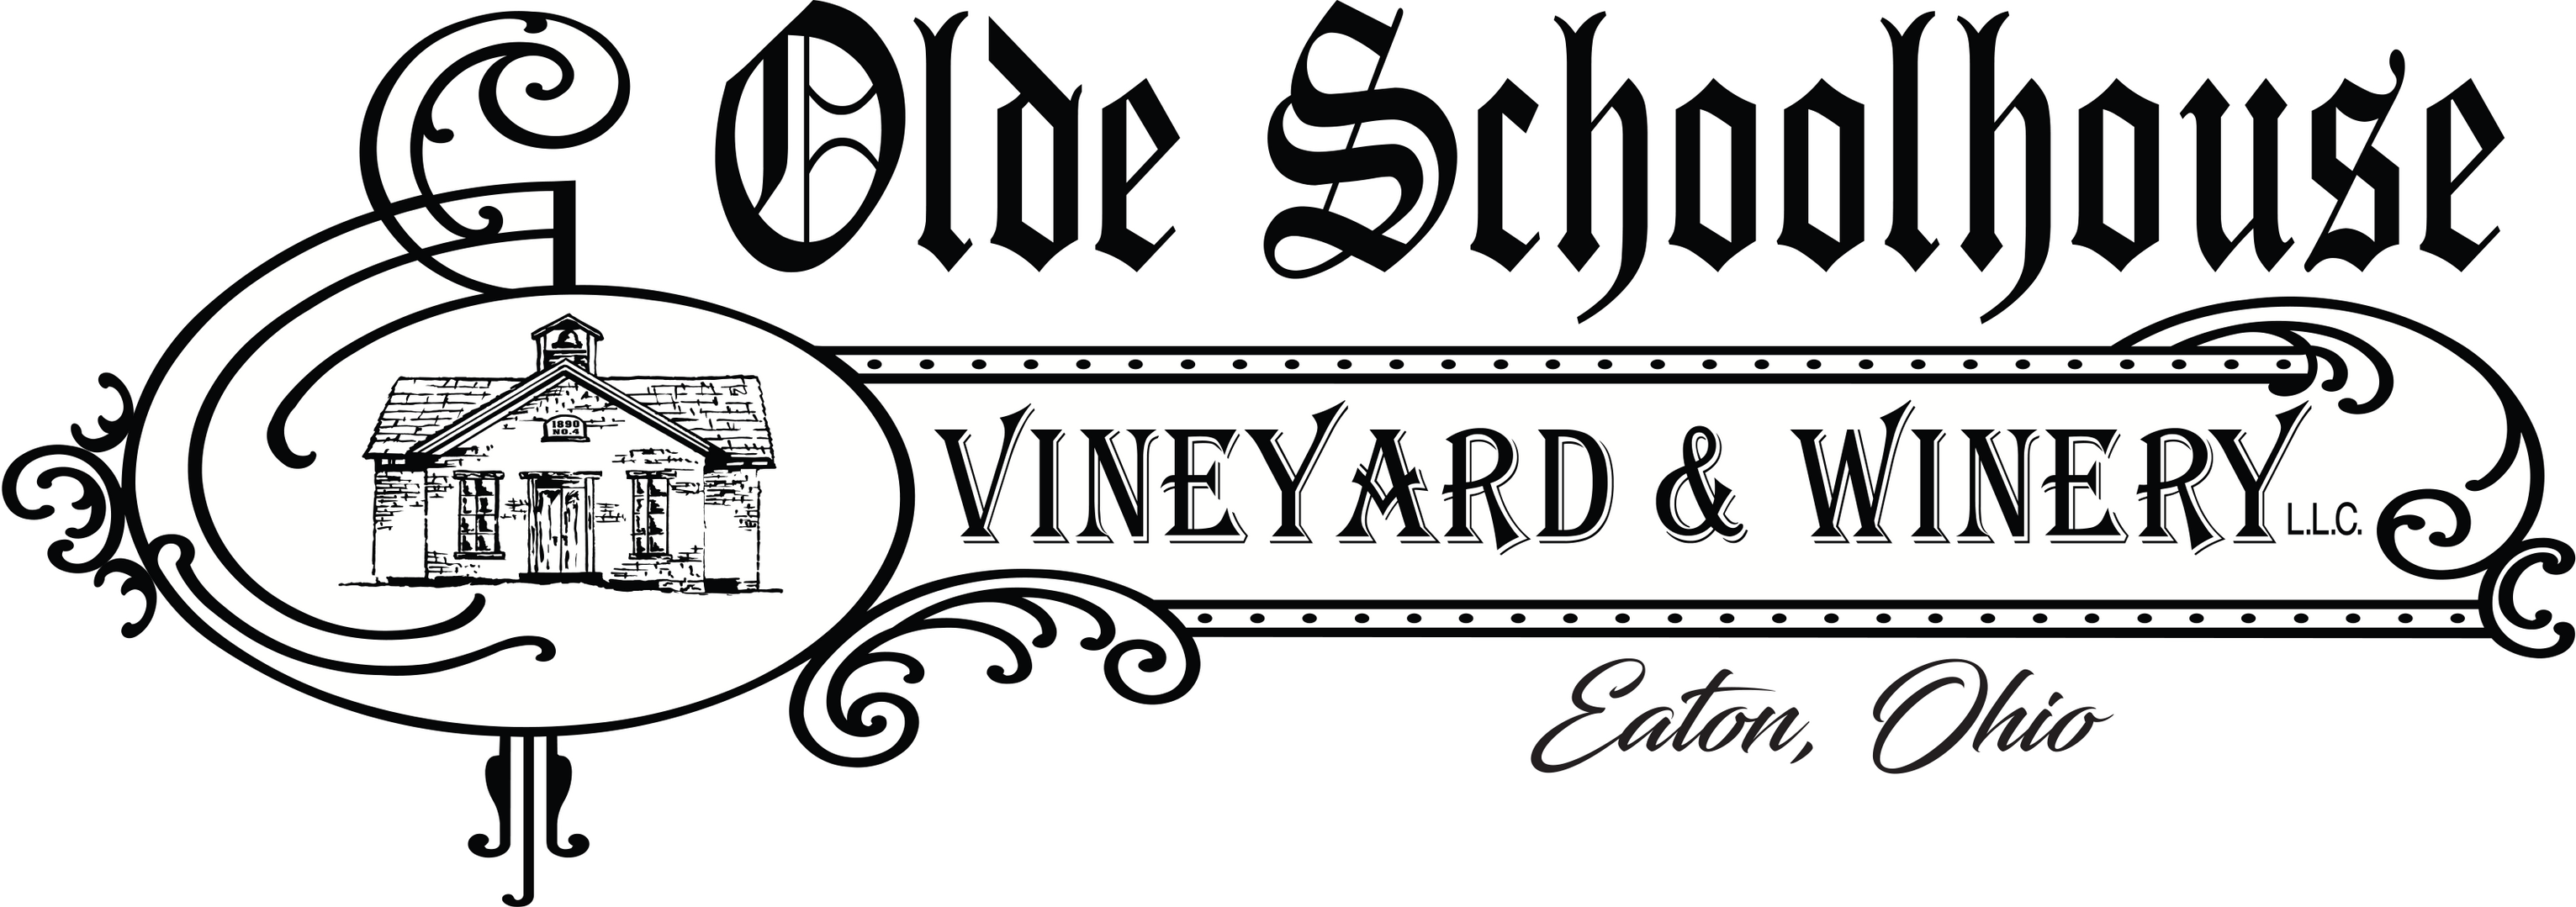 WH_OldSchoolhouseWinery.png